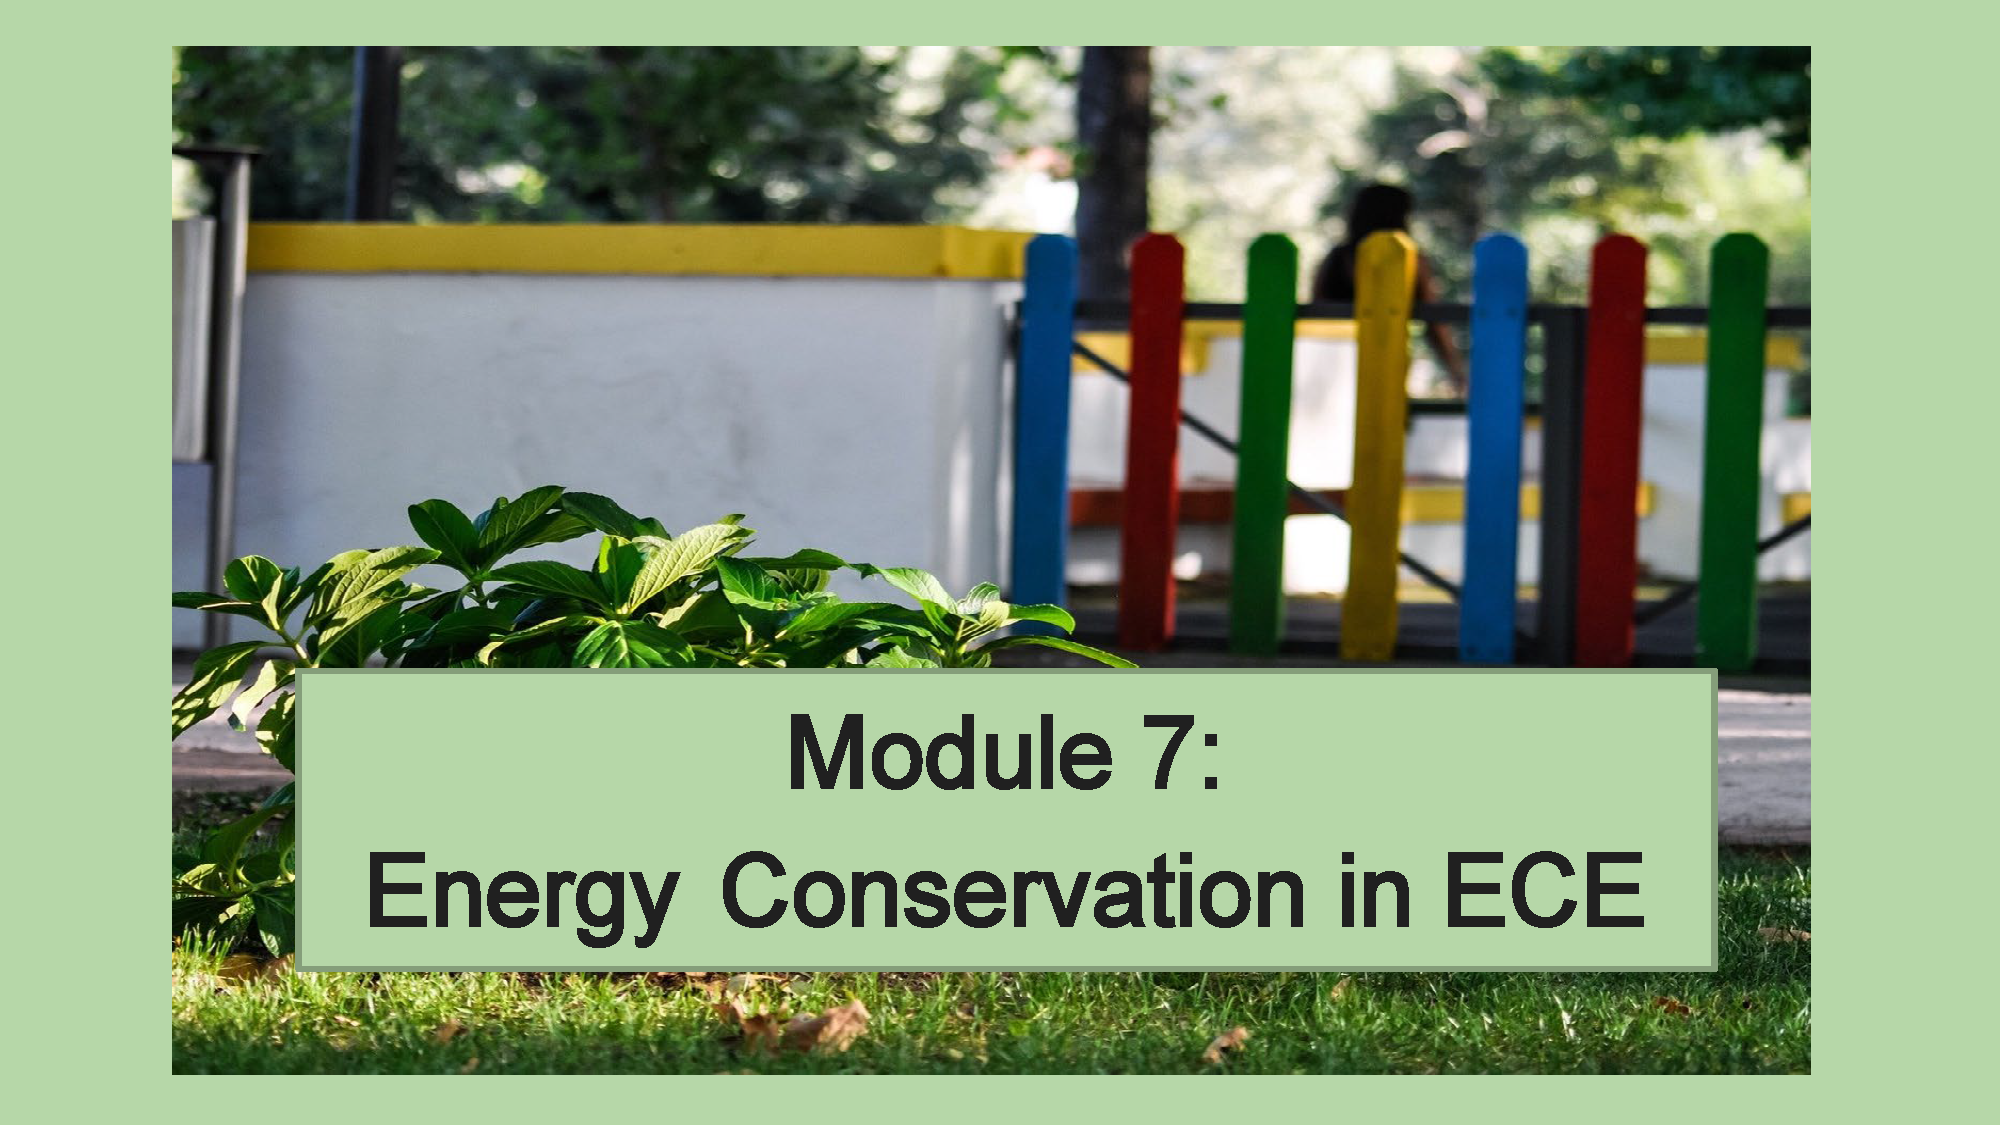 Energy Conservation cover image